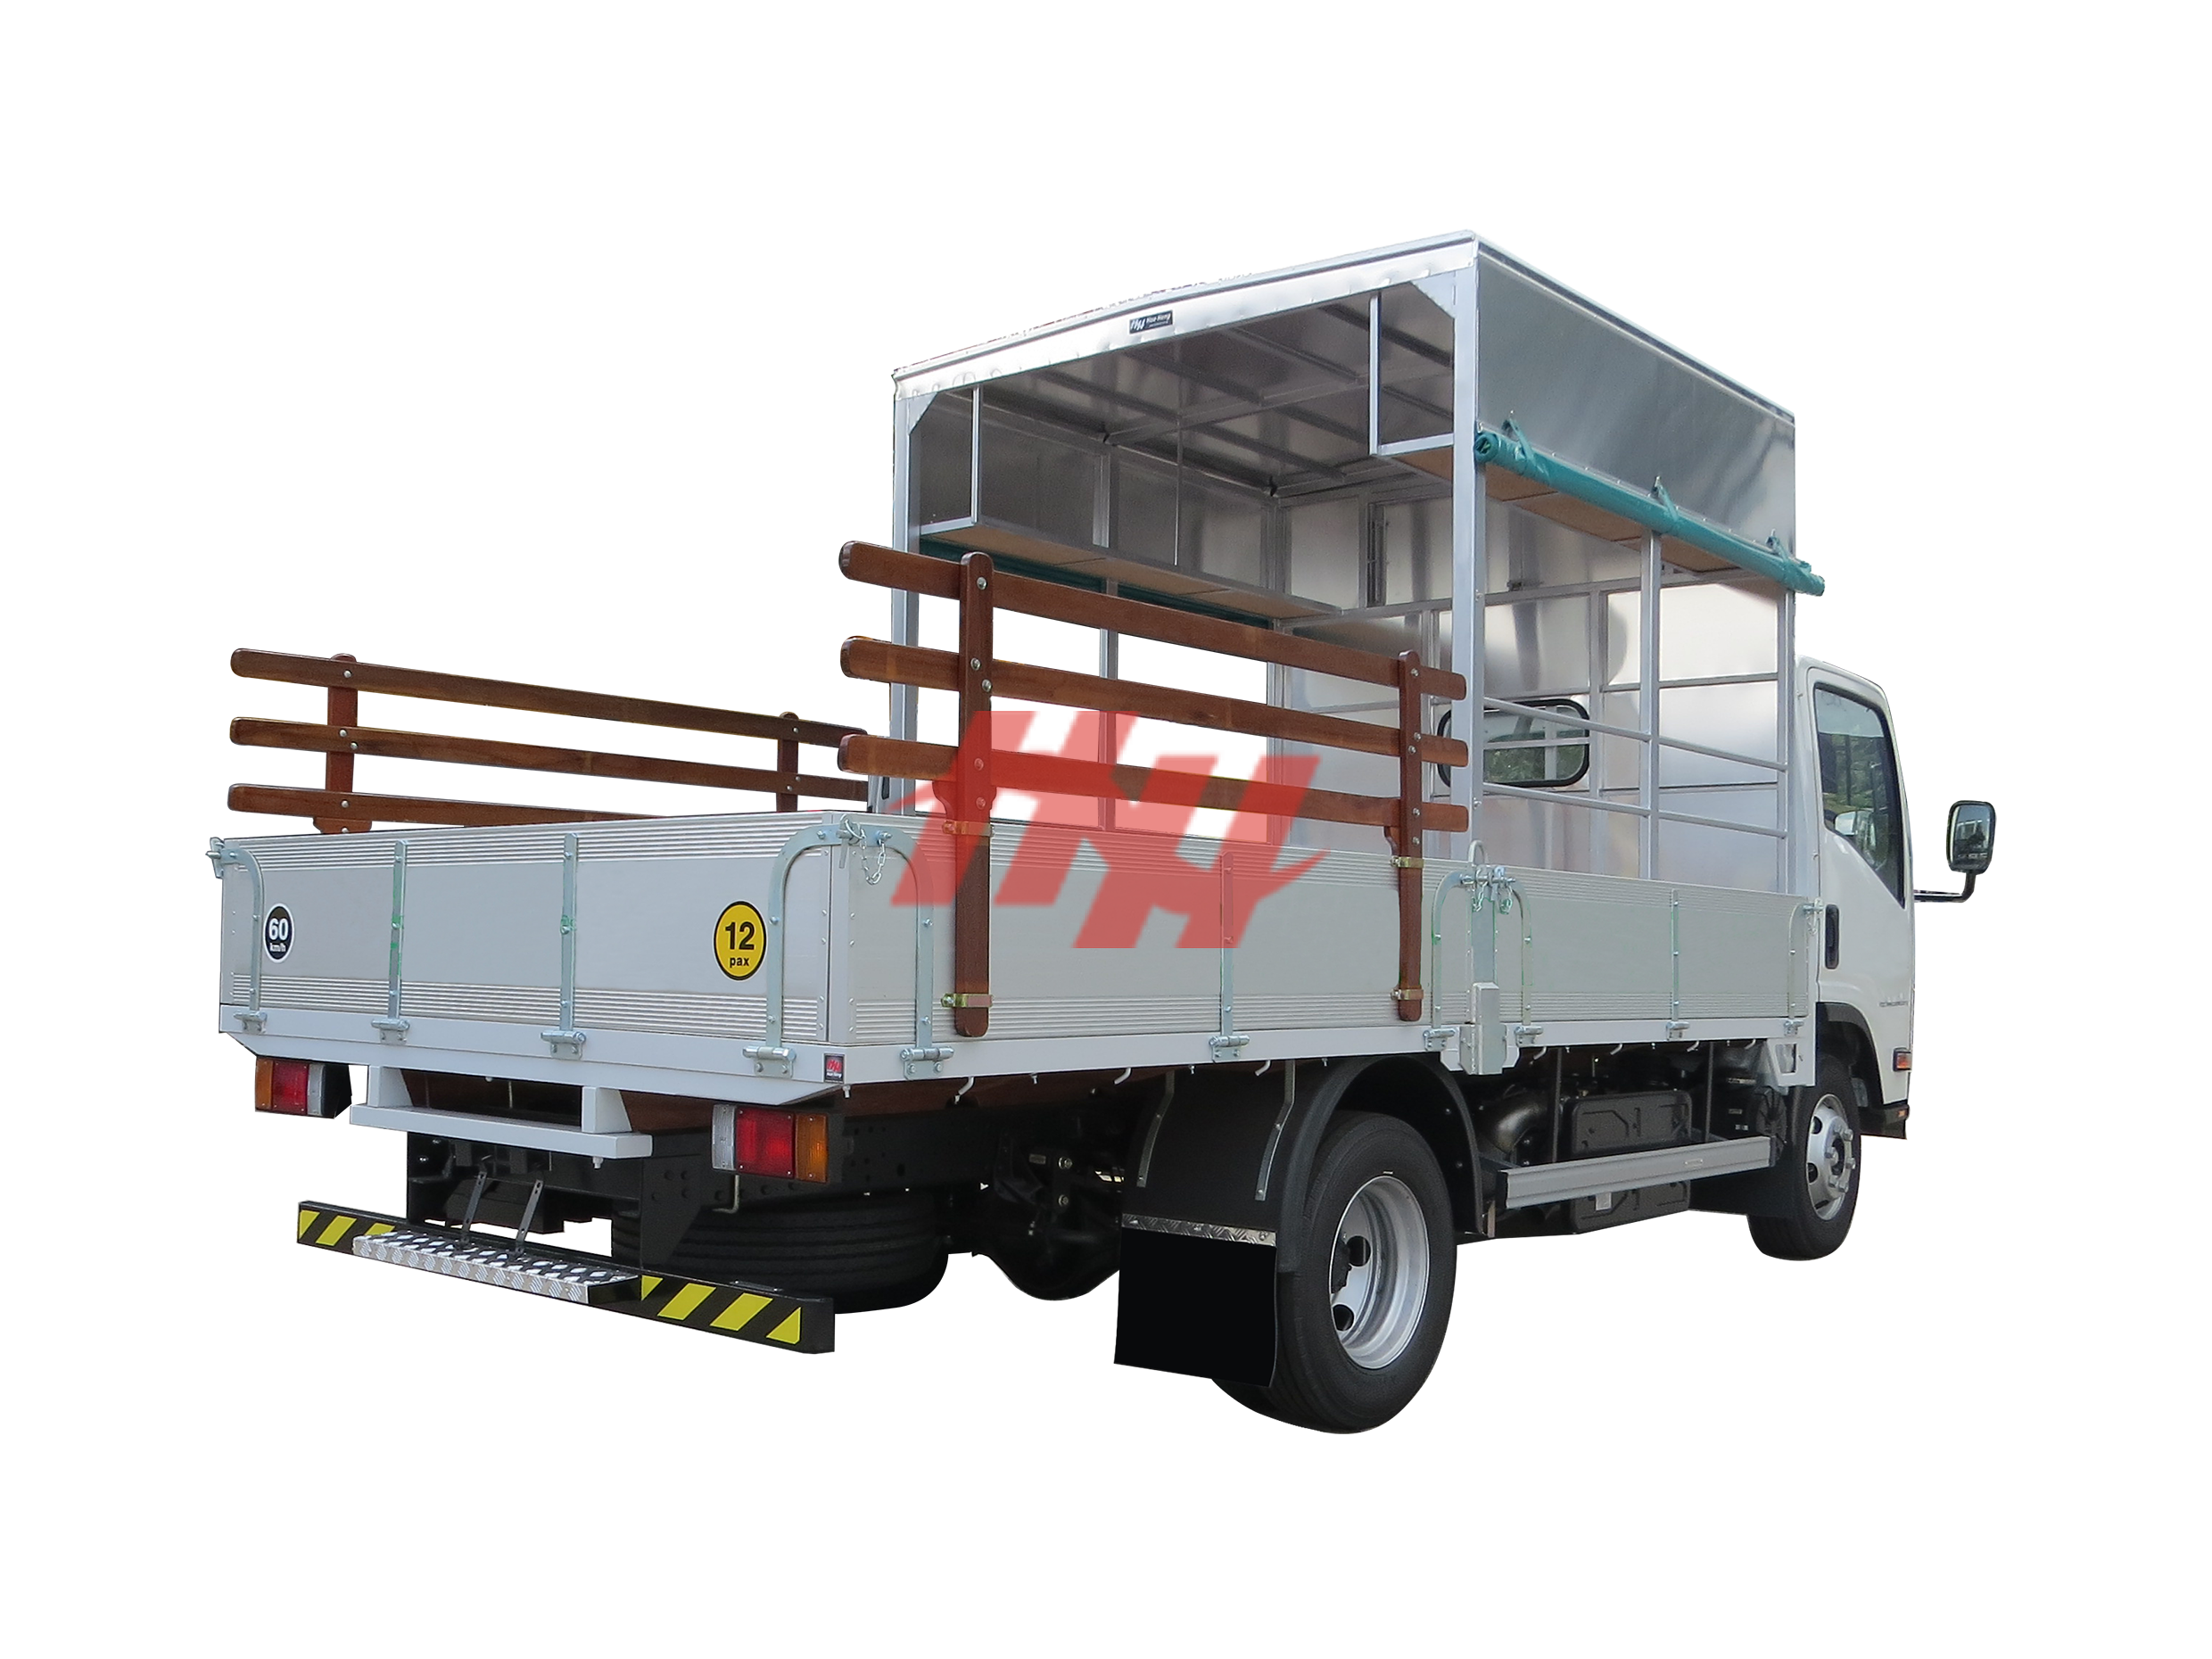 High roof half length canopy on aluminium body with roll down side canvas  wooden railing  galvanished hinges and rear bumper